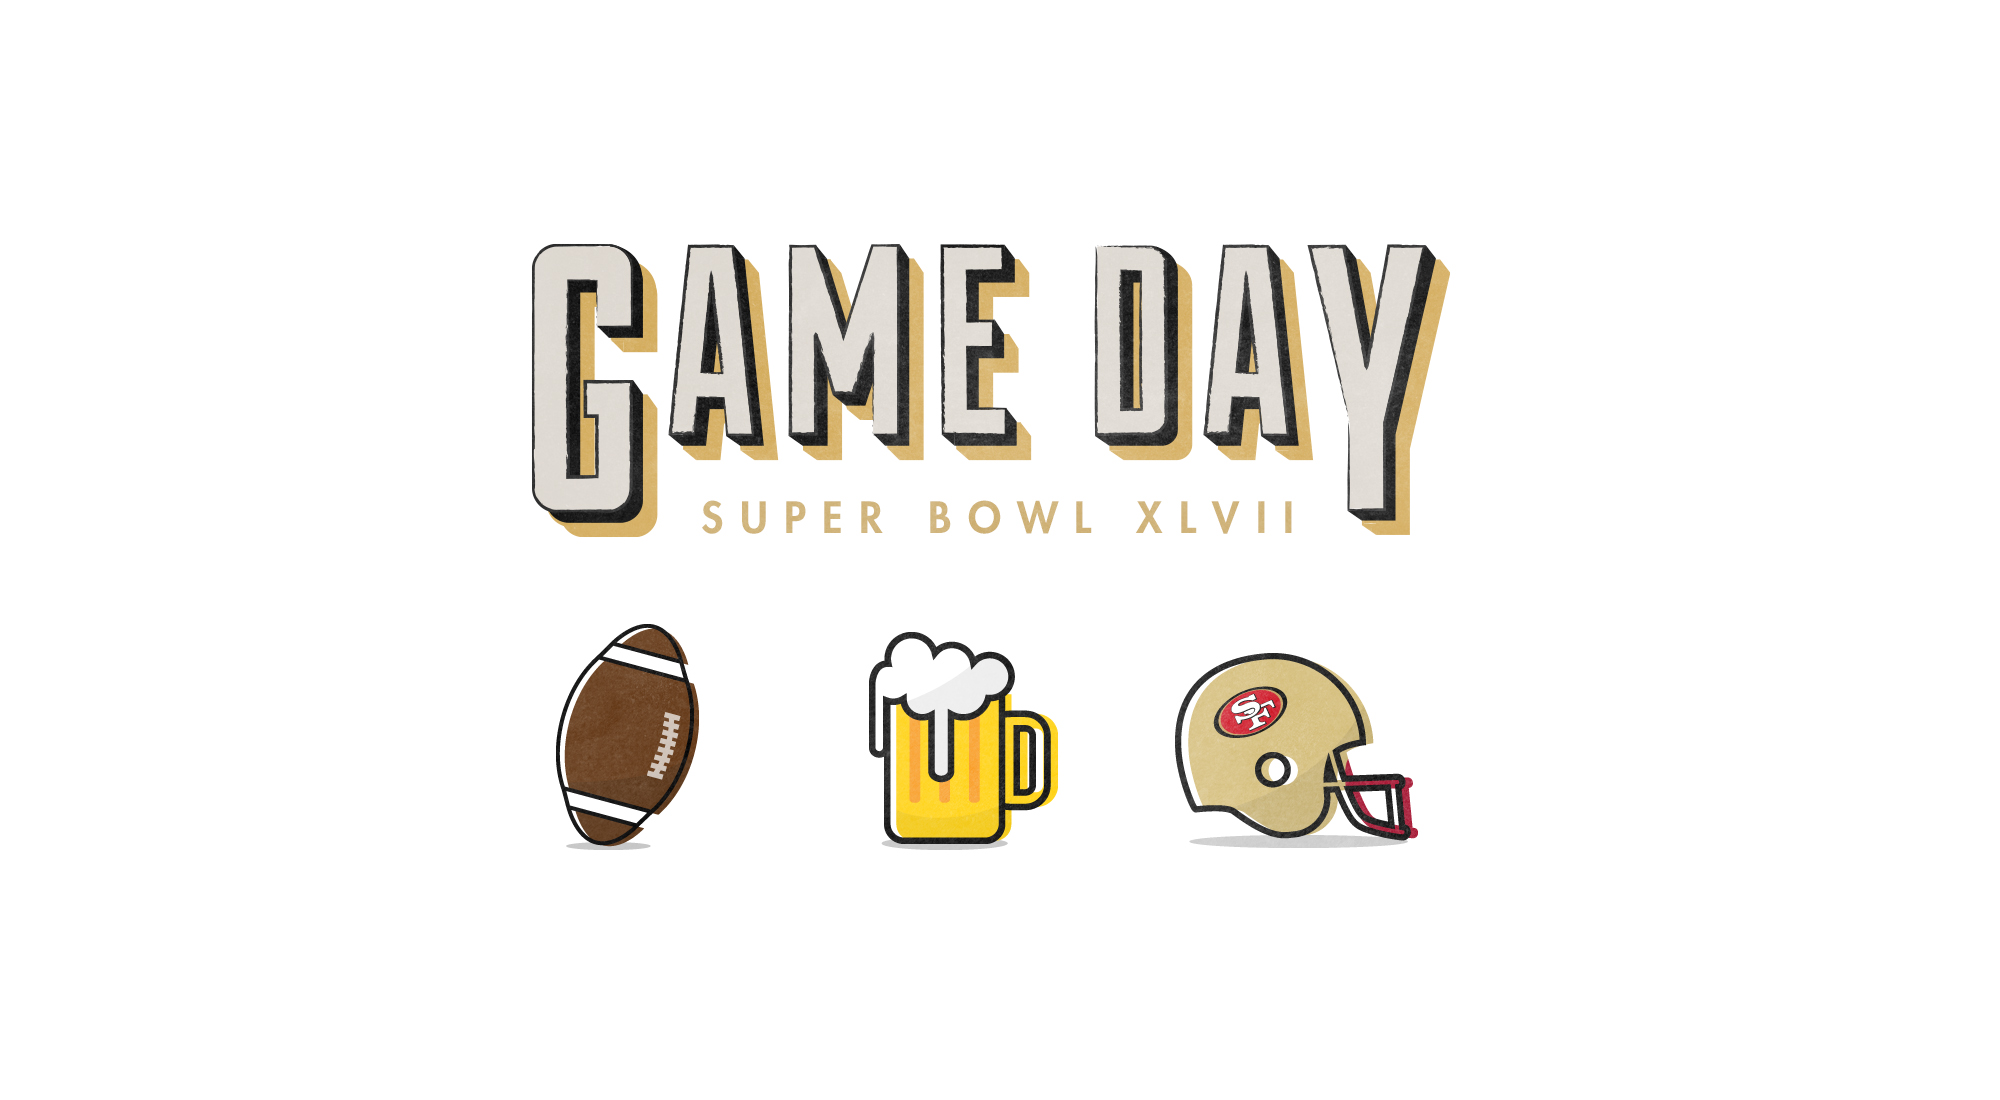 Super Bowl XLVII - Illustration